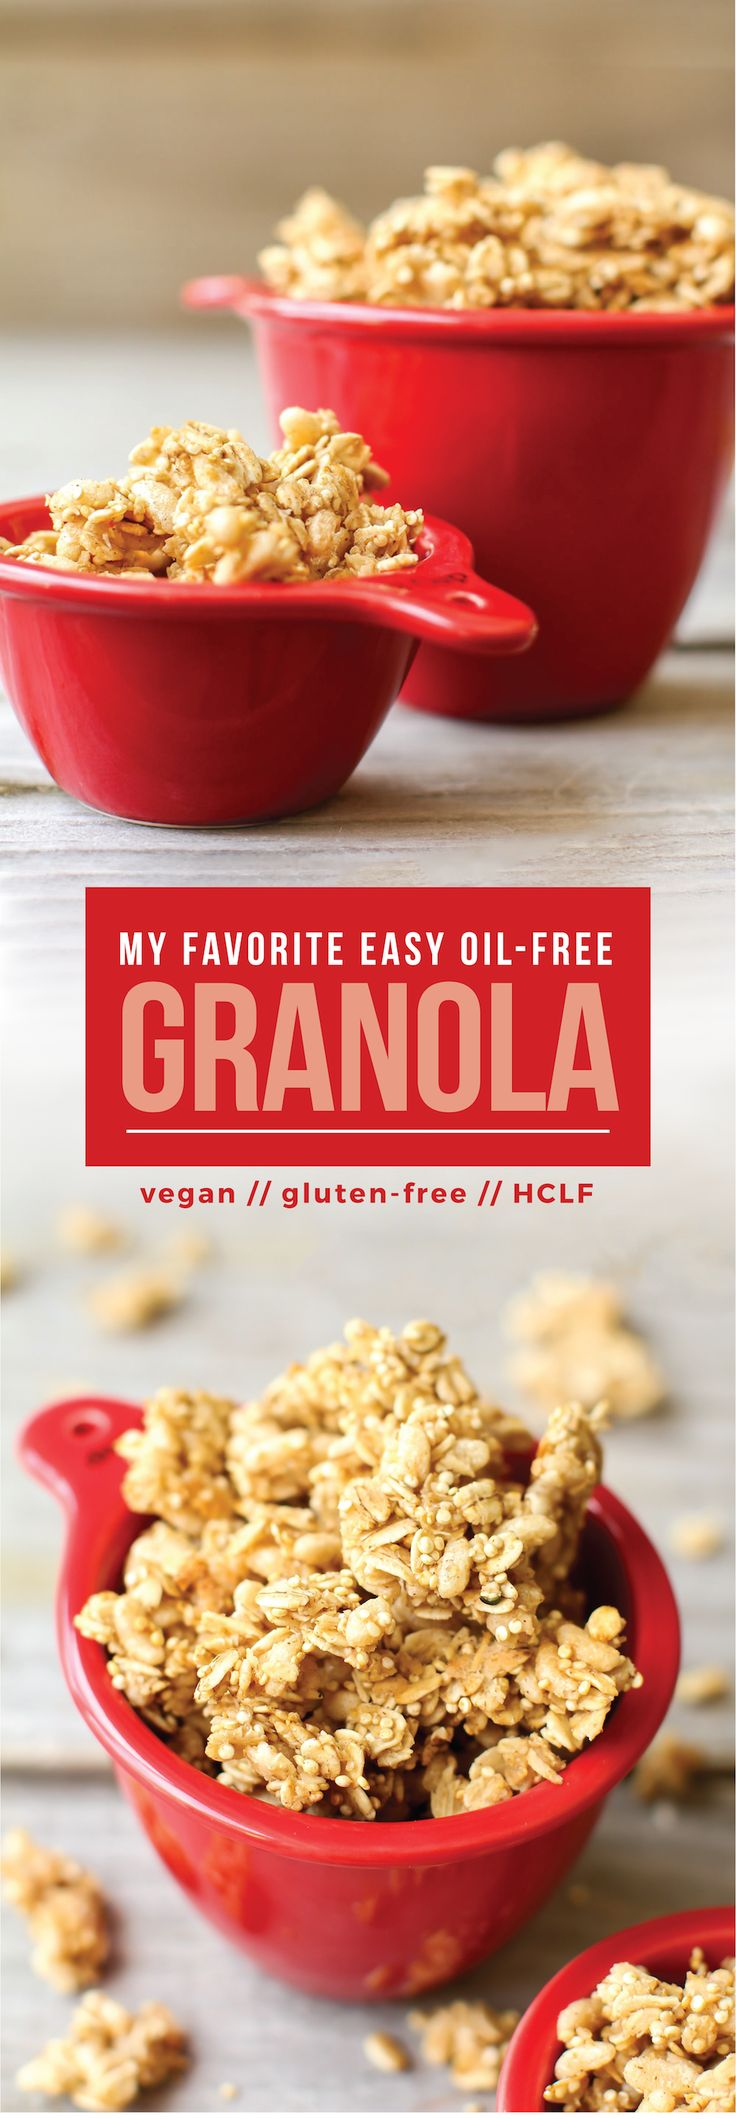 The easiest oil-free granola loaded with crunchy clusters perfect as a snack, cereal, or topping! Vegan, gluten-free, low fat, and customizable...